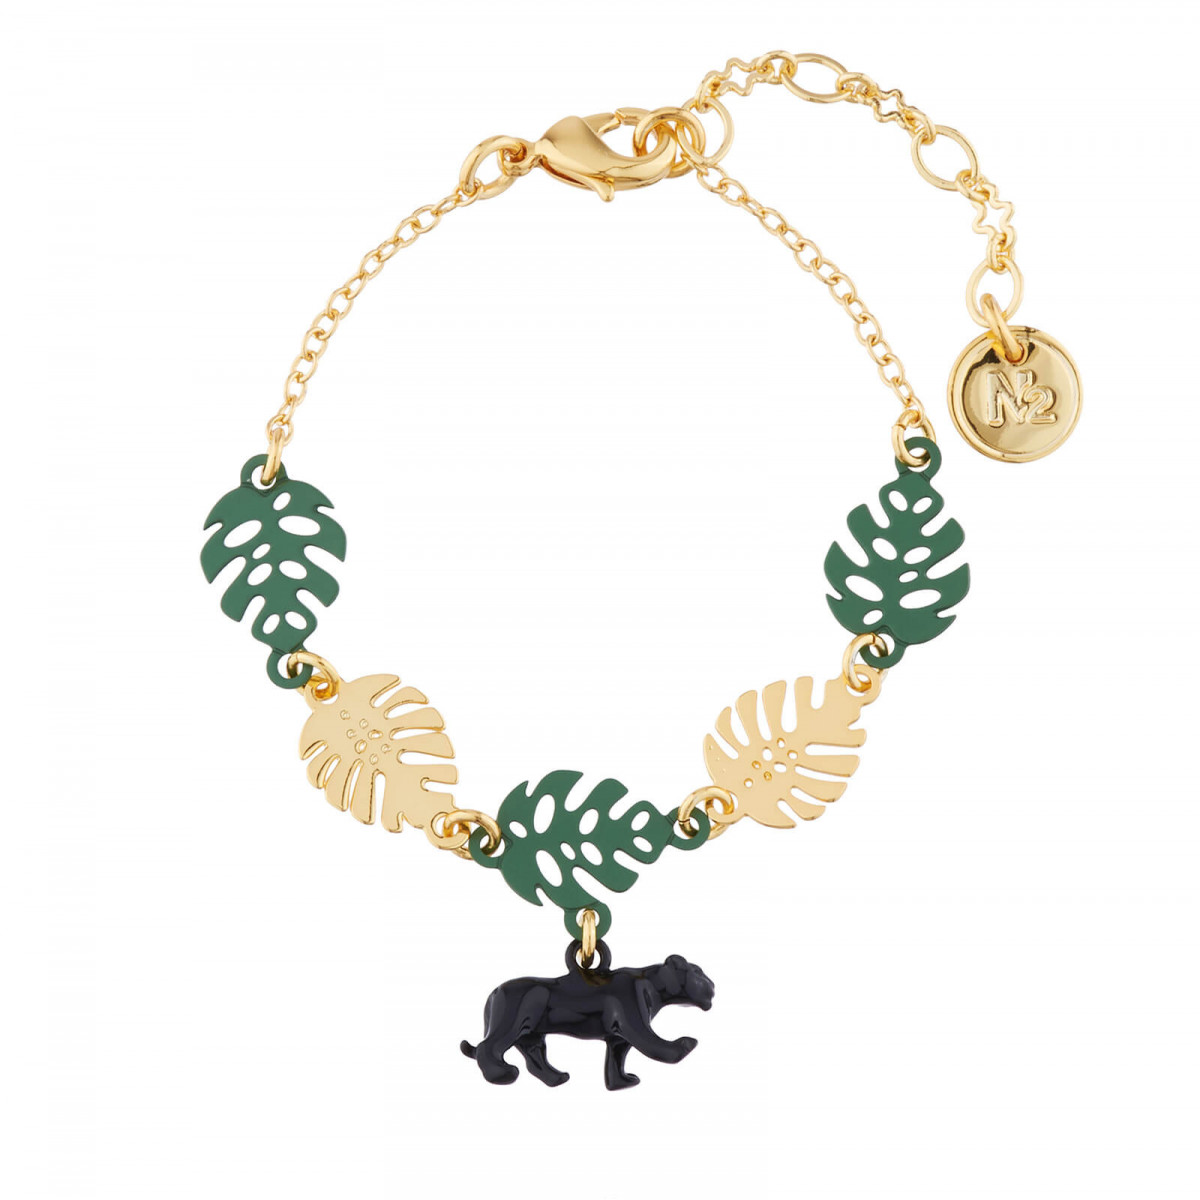 Tree Leaf Chokers Necklaces With Earrings Luxuriant In Design Jewelry & Watches